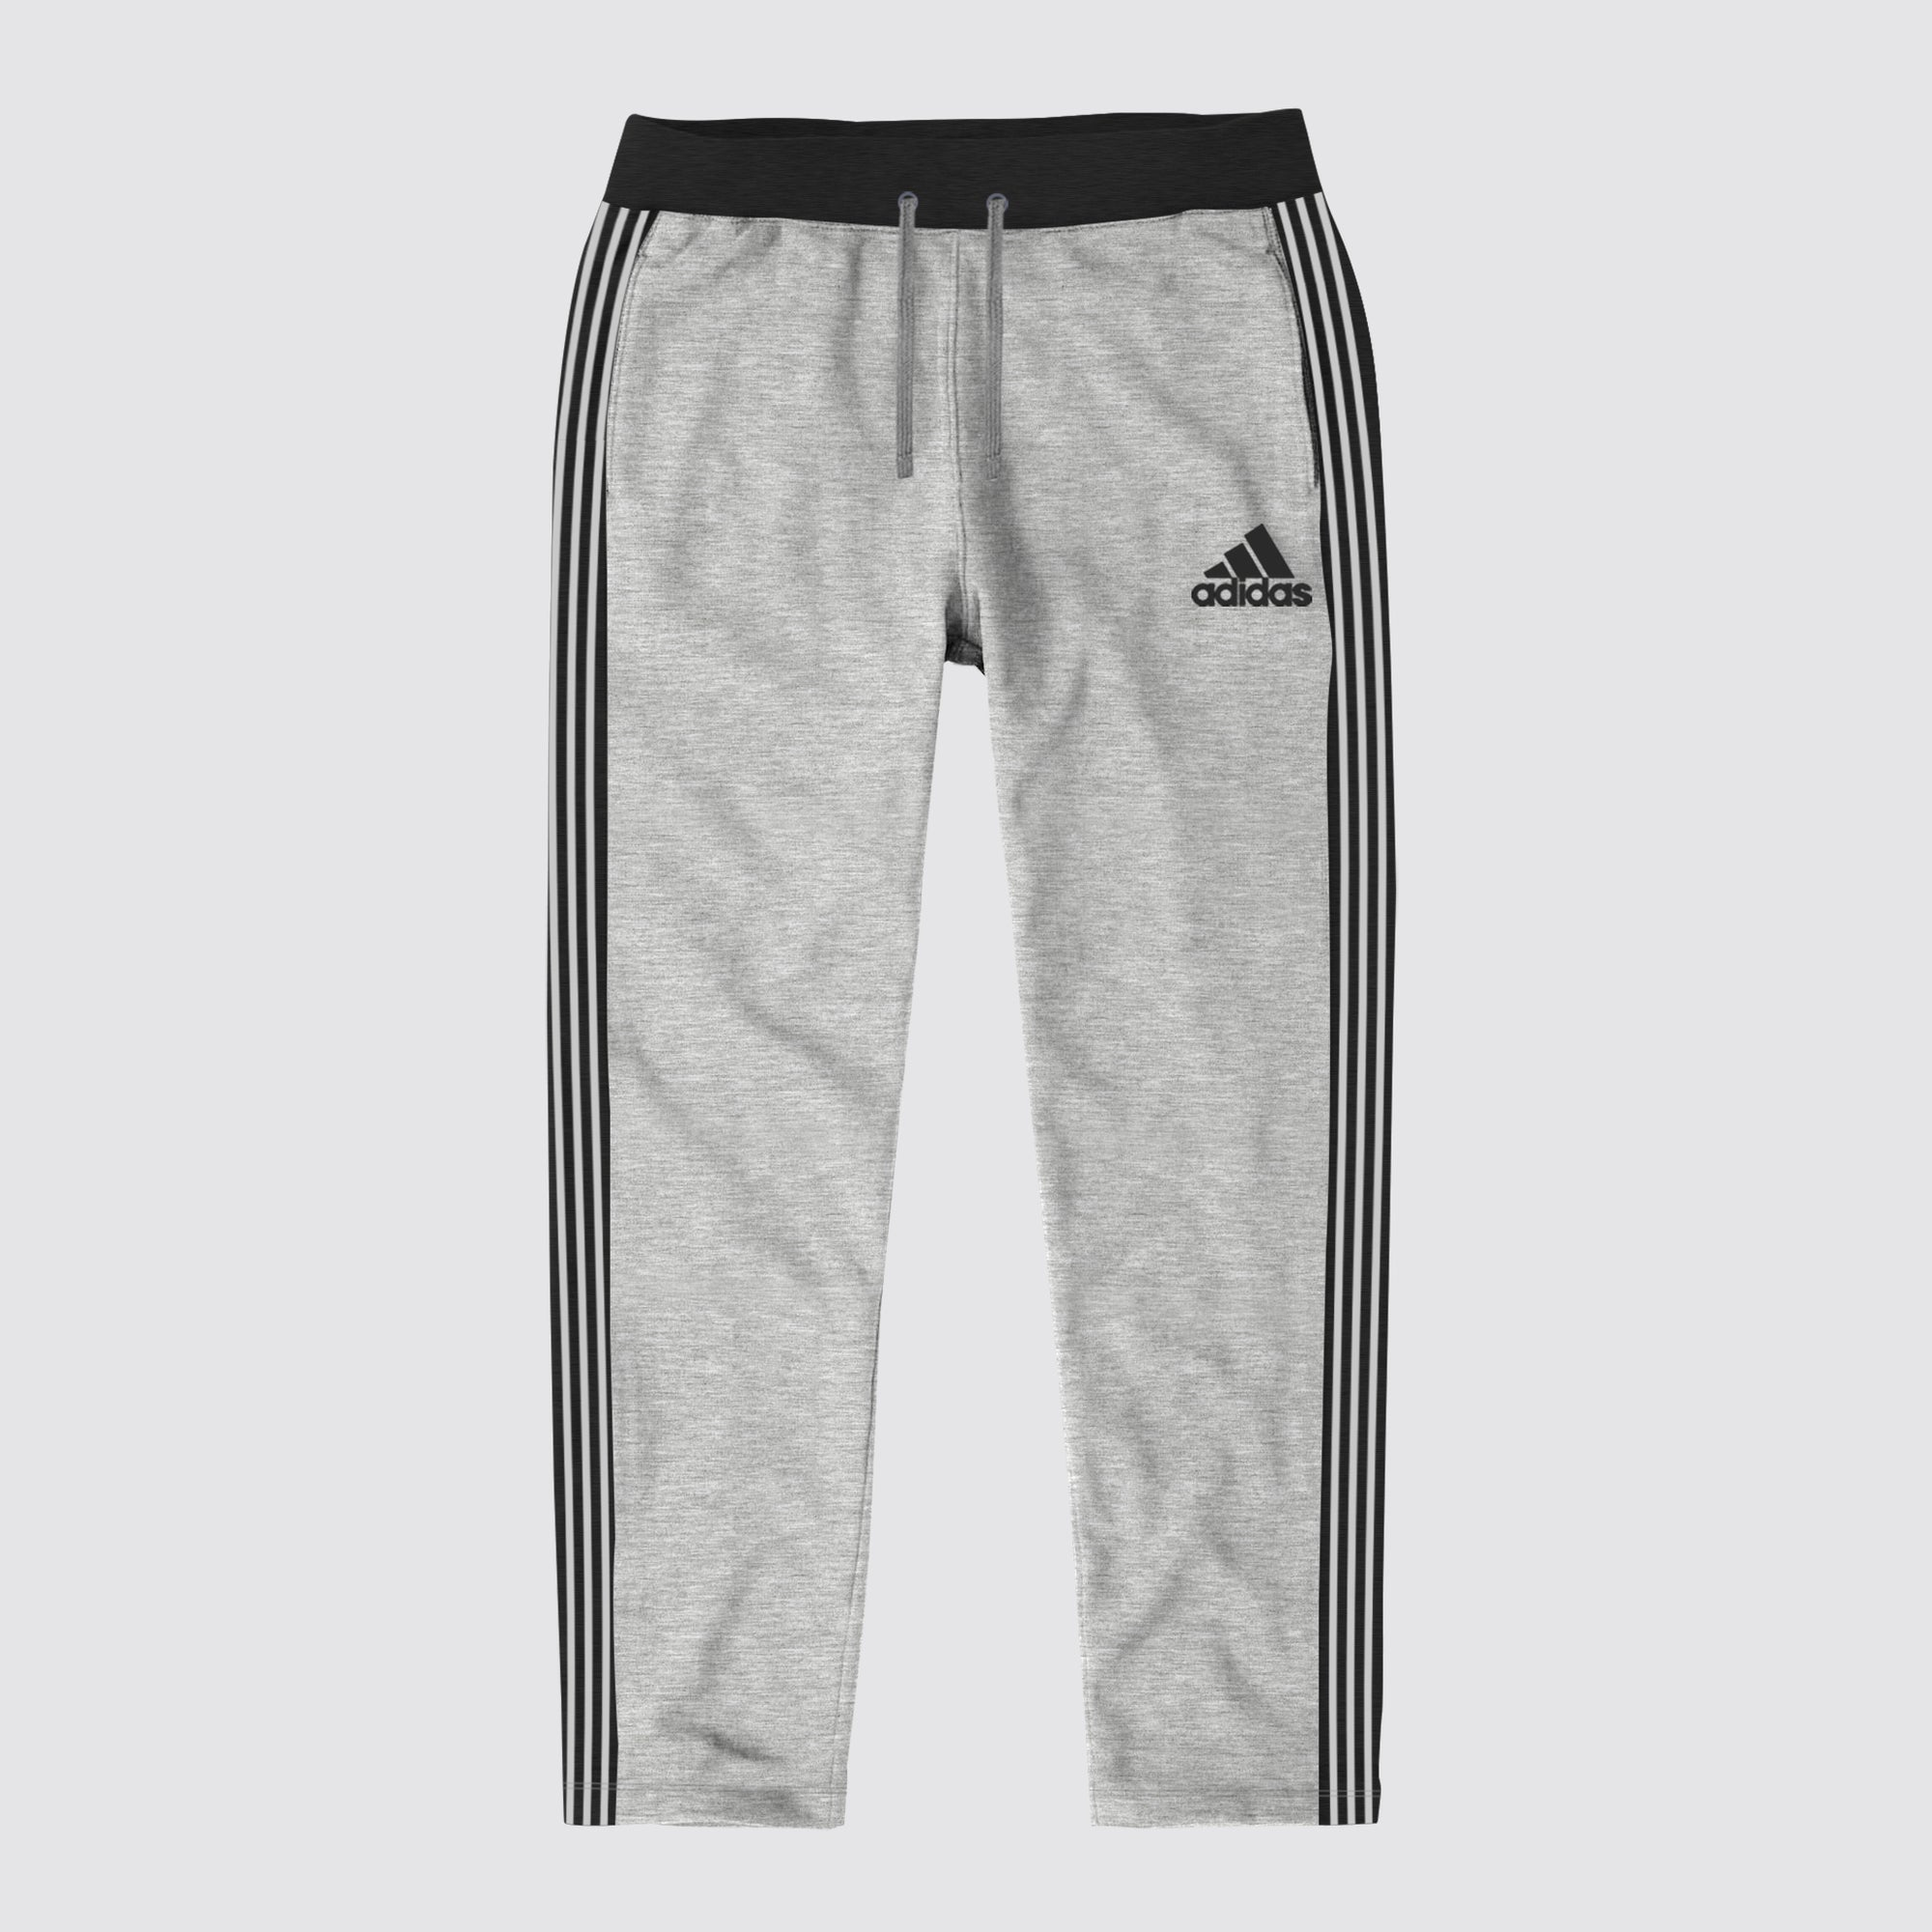 Adidas Single Jersey Regular Fit Trouser For Men-Grey Melange with Charcoal & Grey Stripe-BE8657